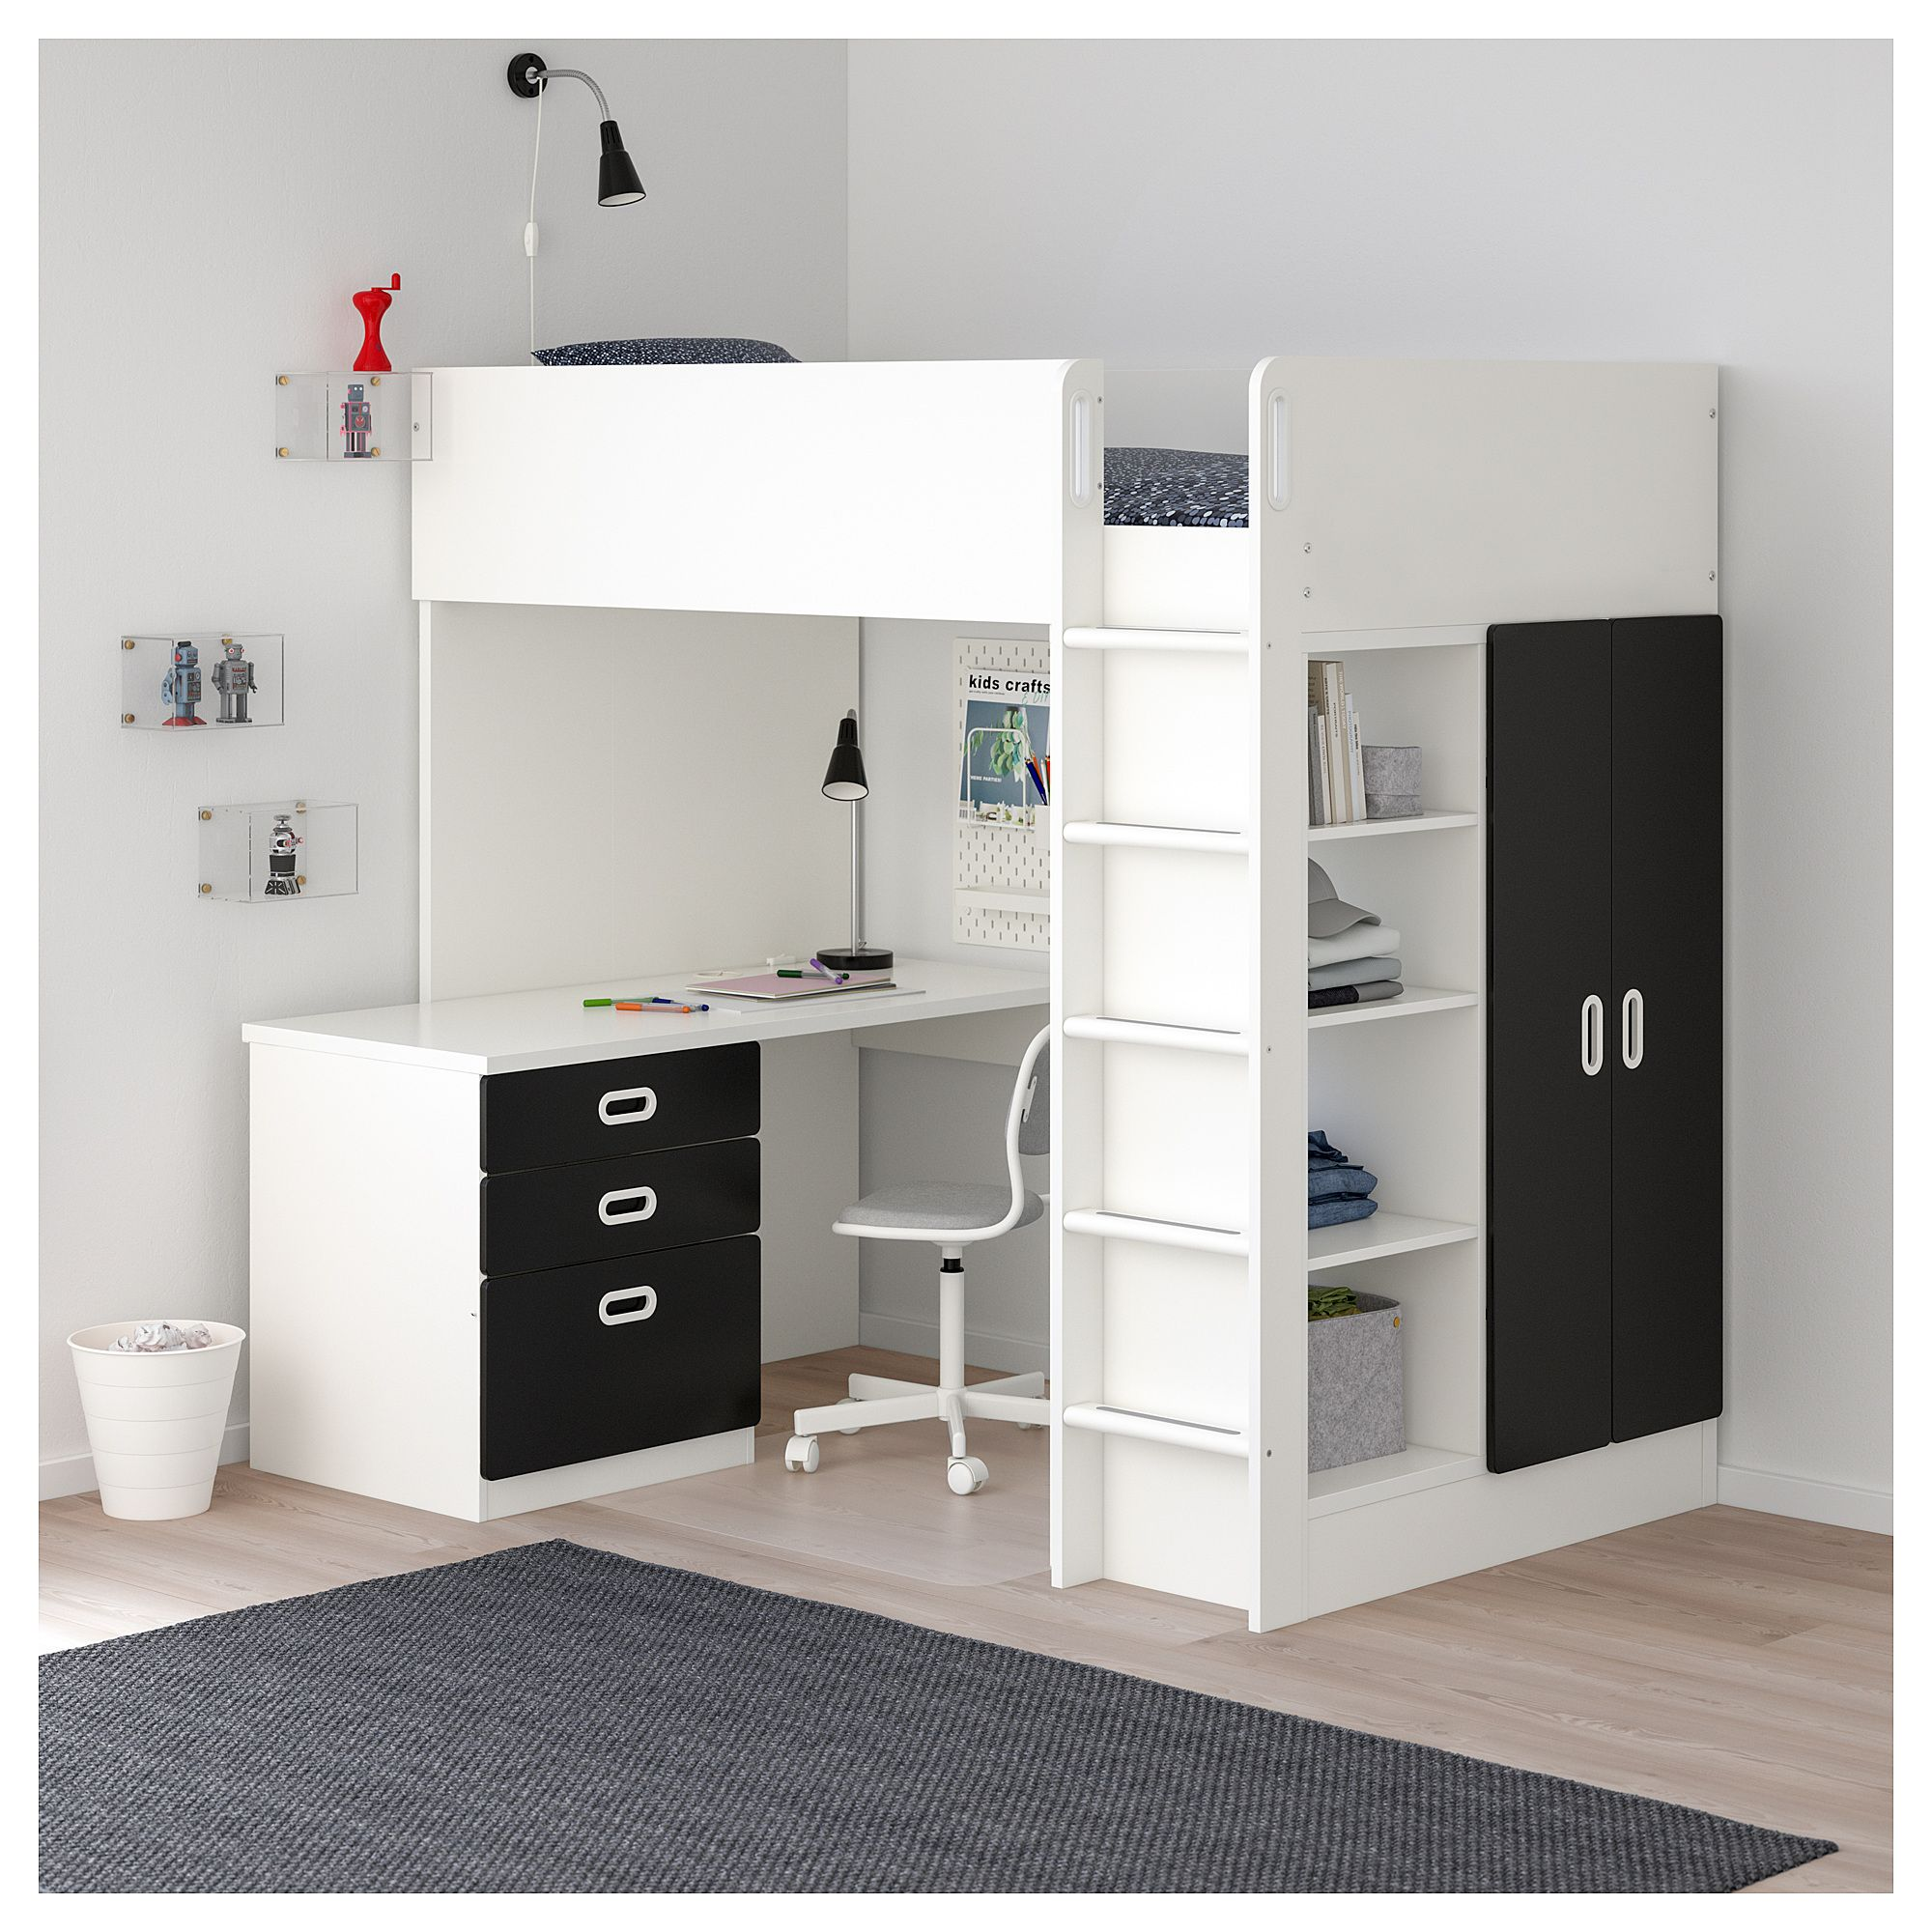 Grey loft bed with desk  IKEA  STUVA  FRITIDS Loft bed with  drawers doors white